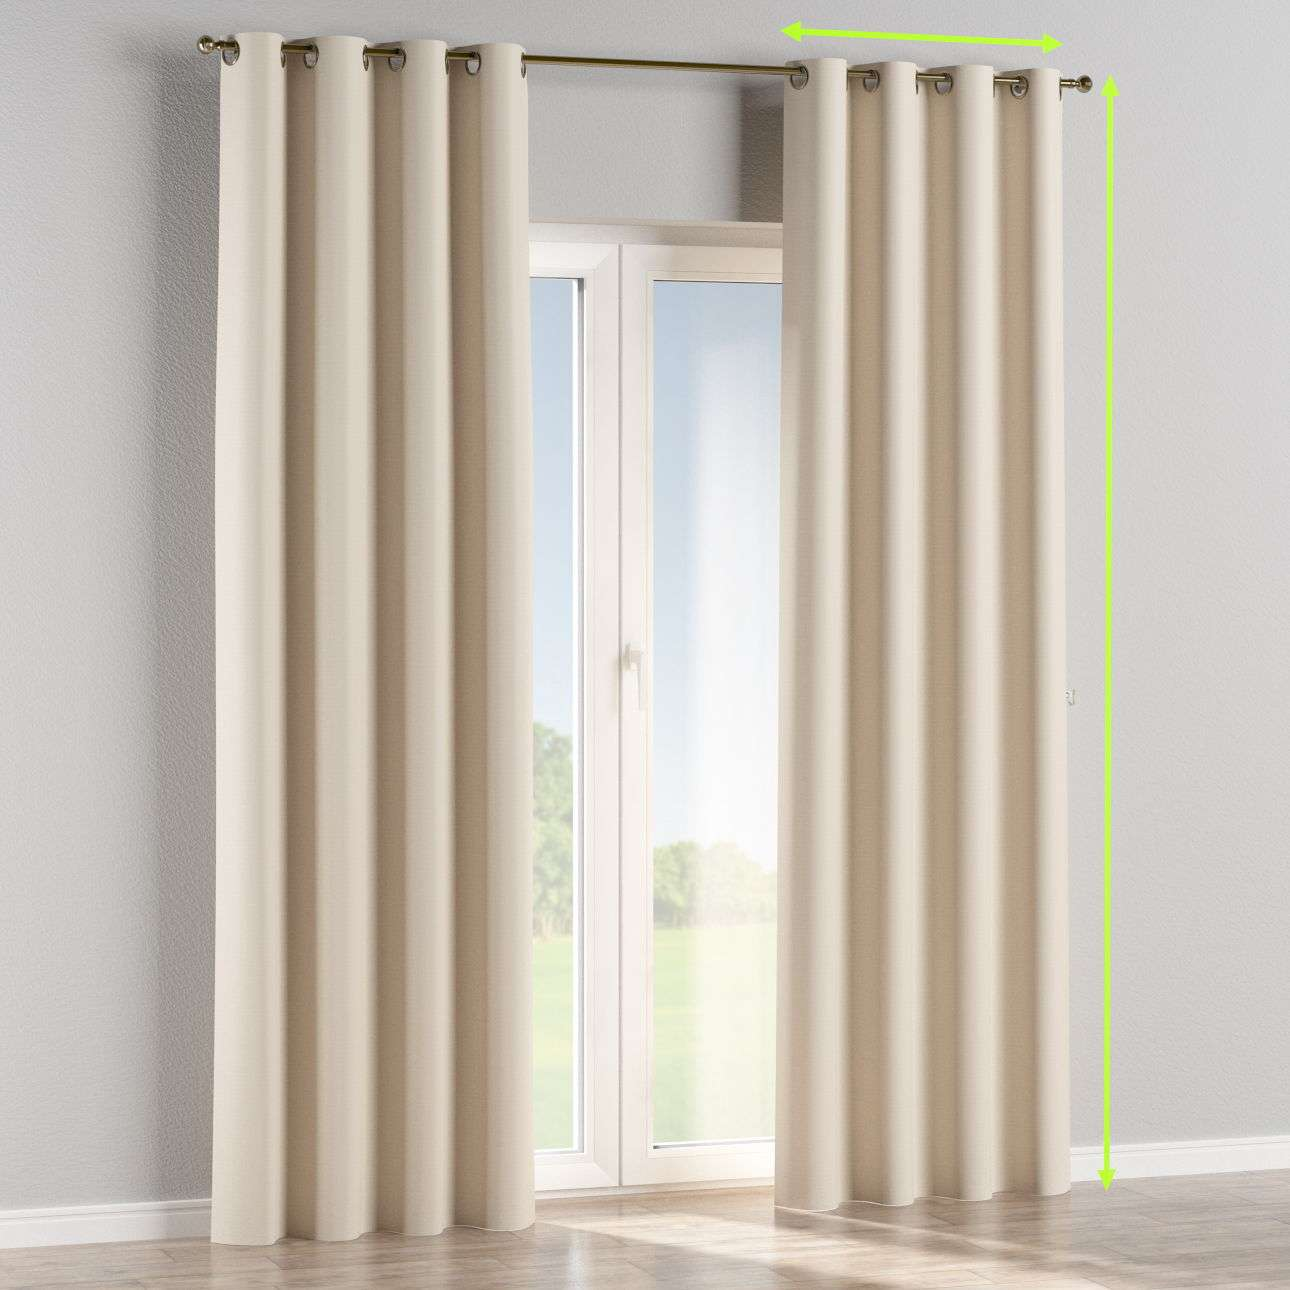 Eyelet curtain in collection Blackout, fabric: 269-66